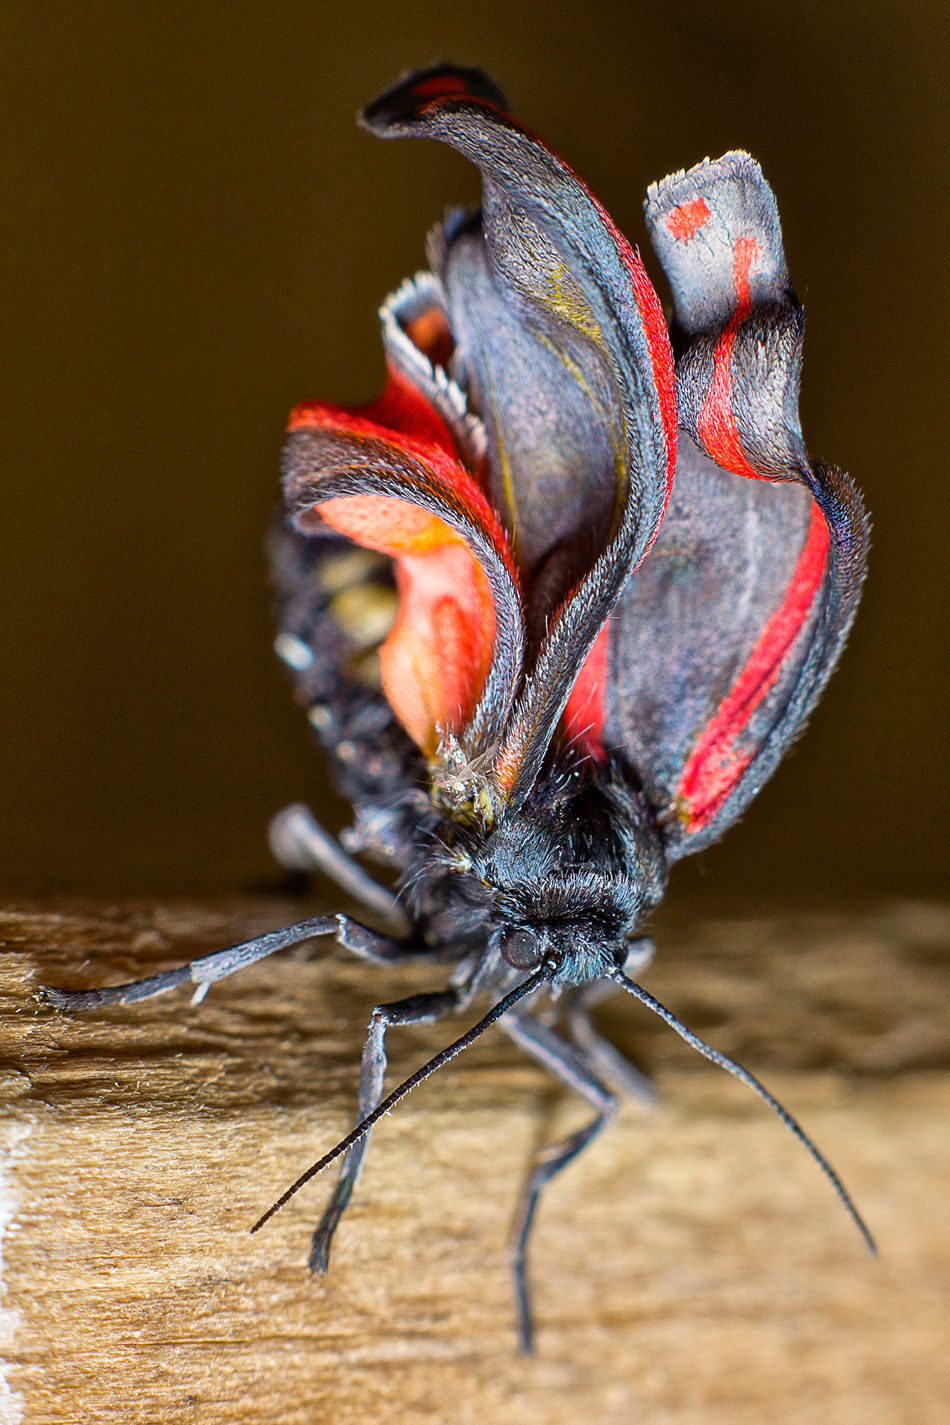 Close-up Focus On Foreground Insect Macro Marcokleinphotography Nature No People Red Selective Focus Zoology